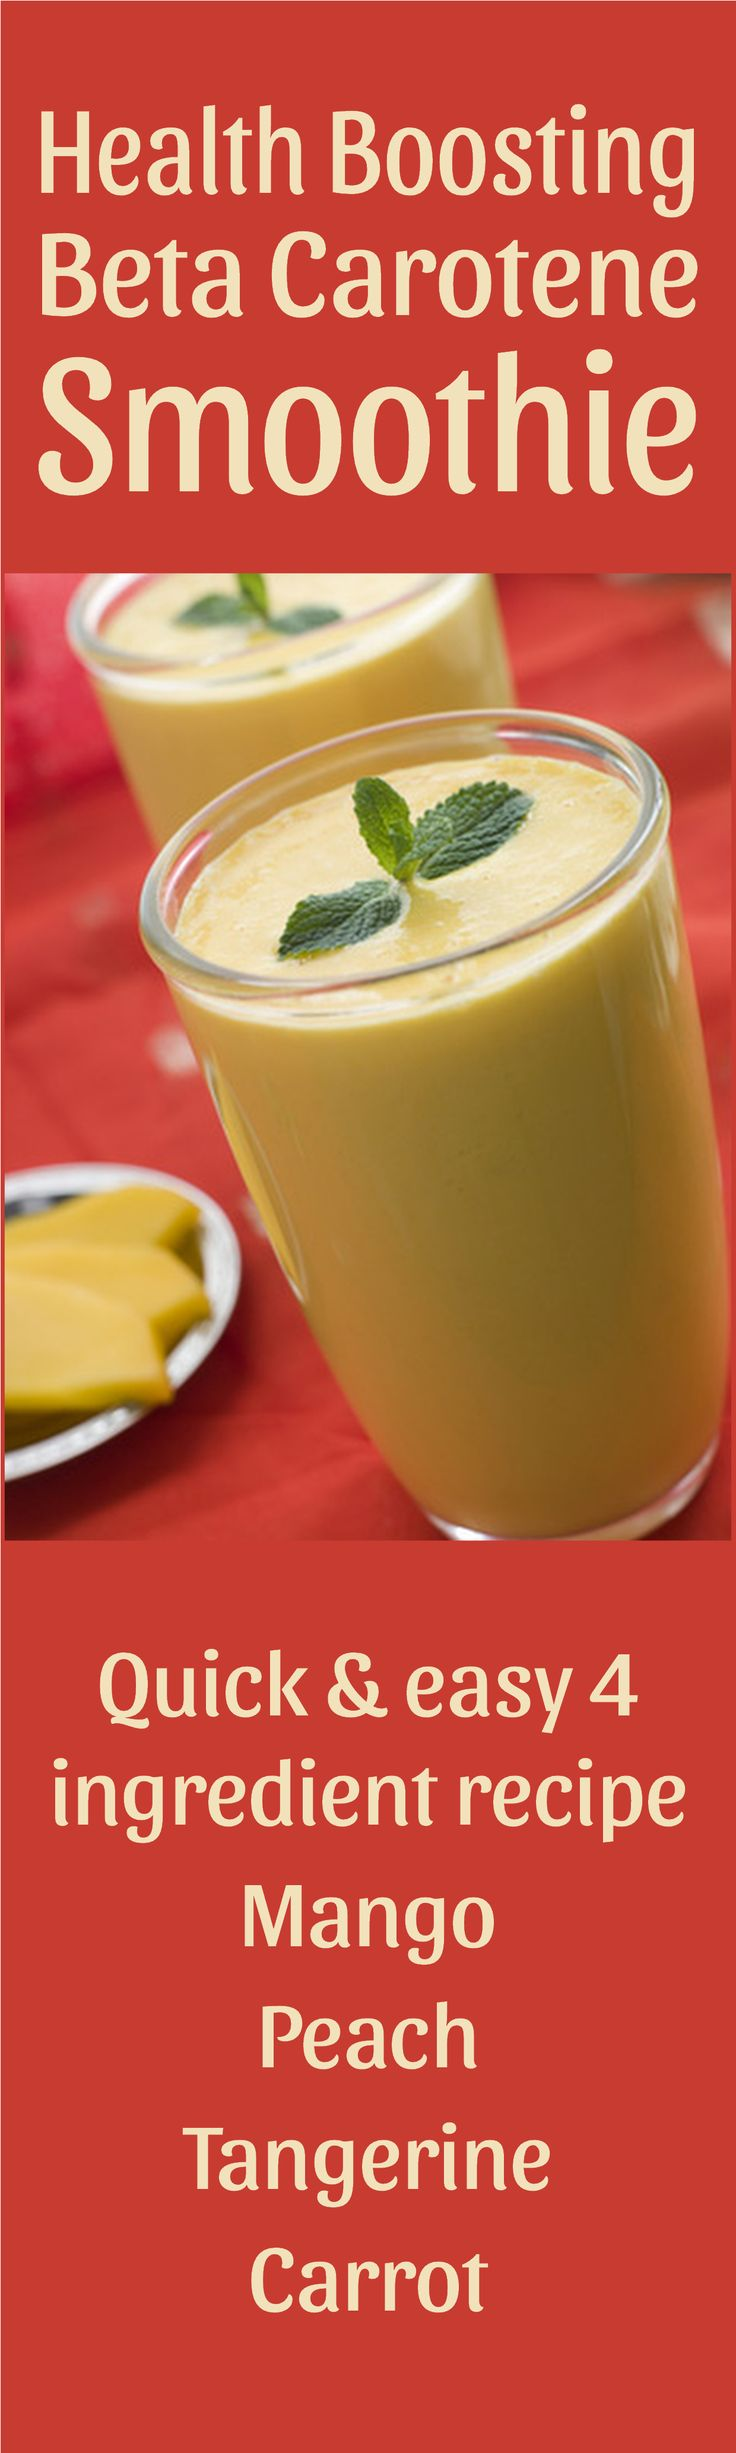 Quick and easy 4 ingredient smoothie to boost beta-carotene levels. Beta carotene is, among other things, needed for healthy skin and immune system.